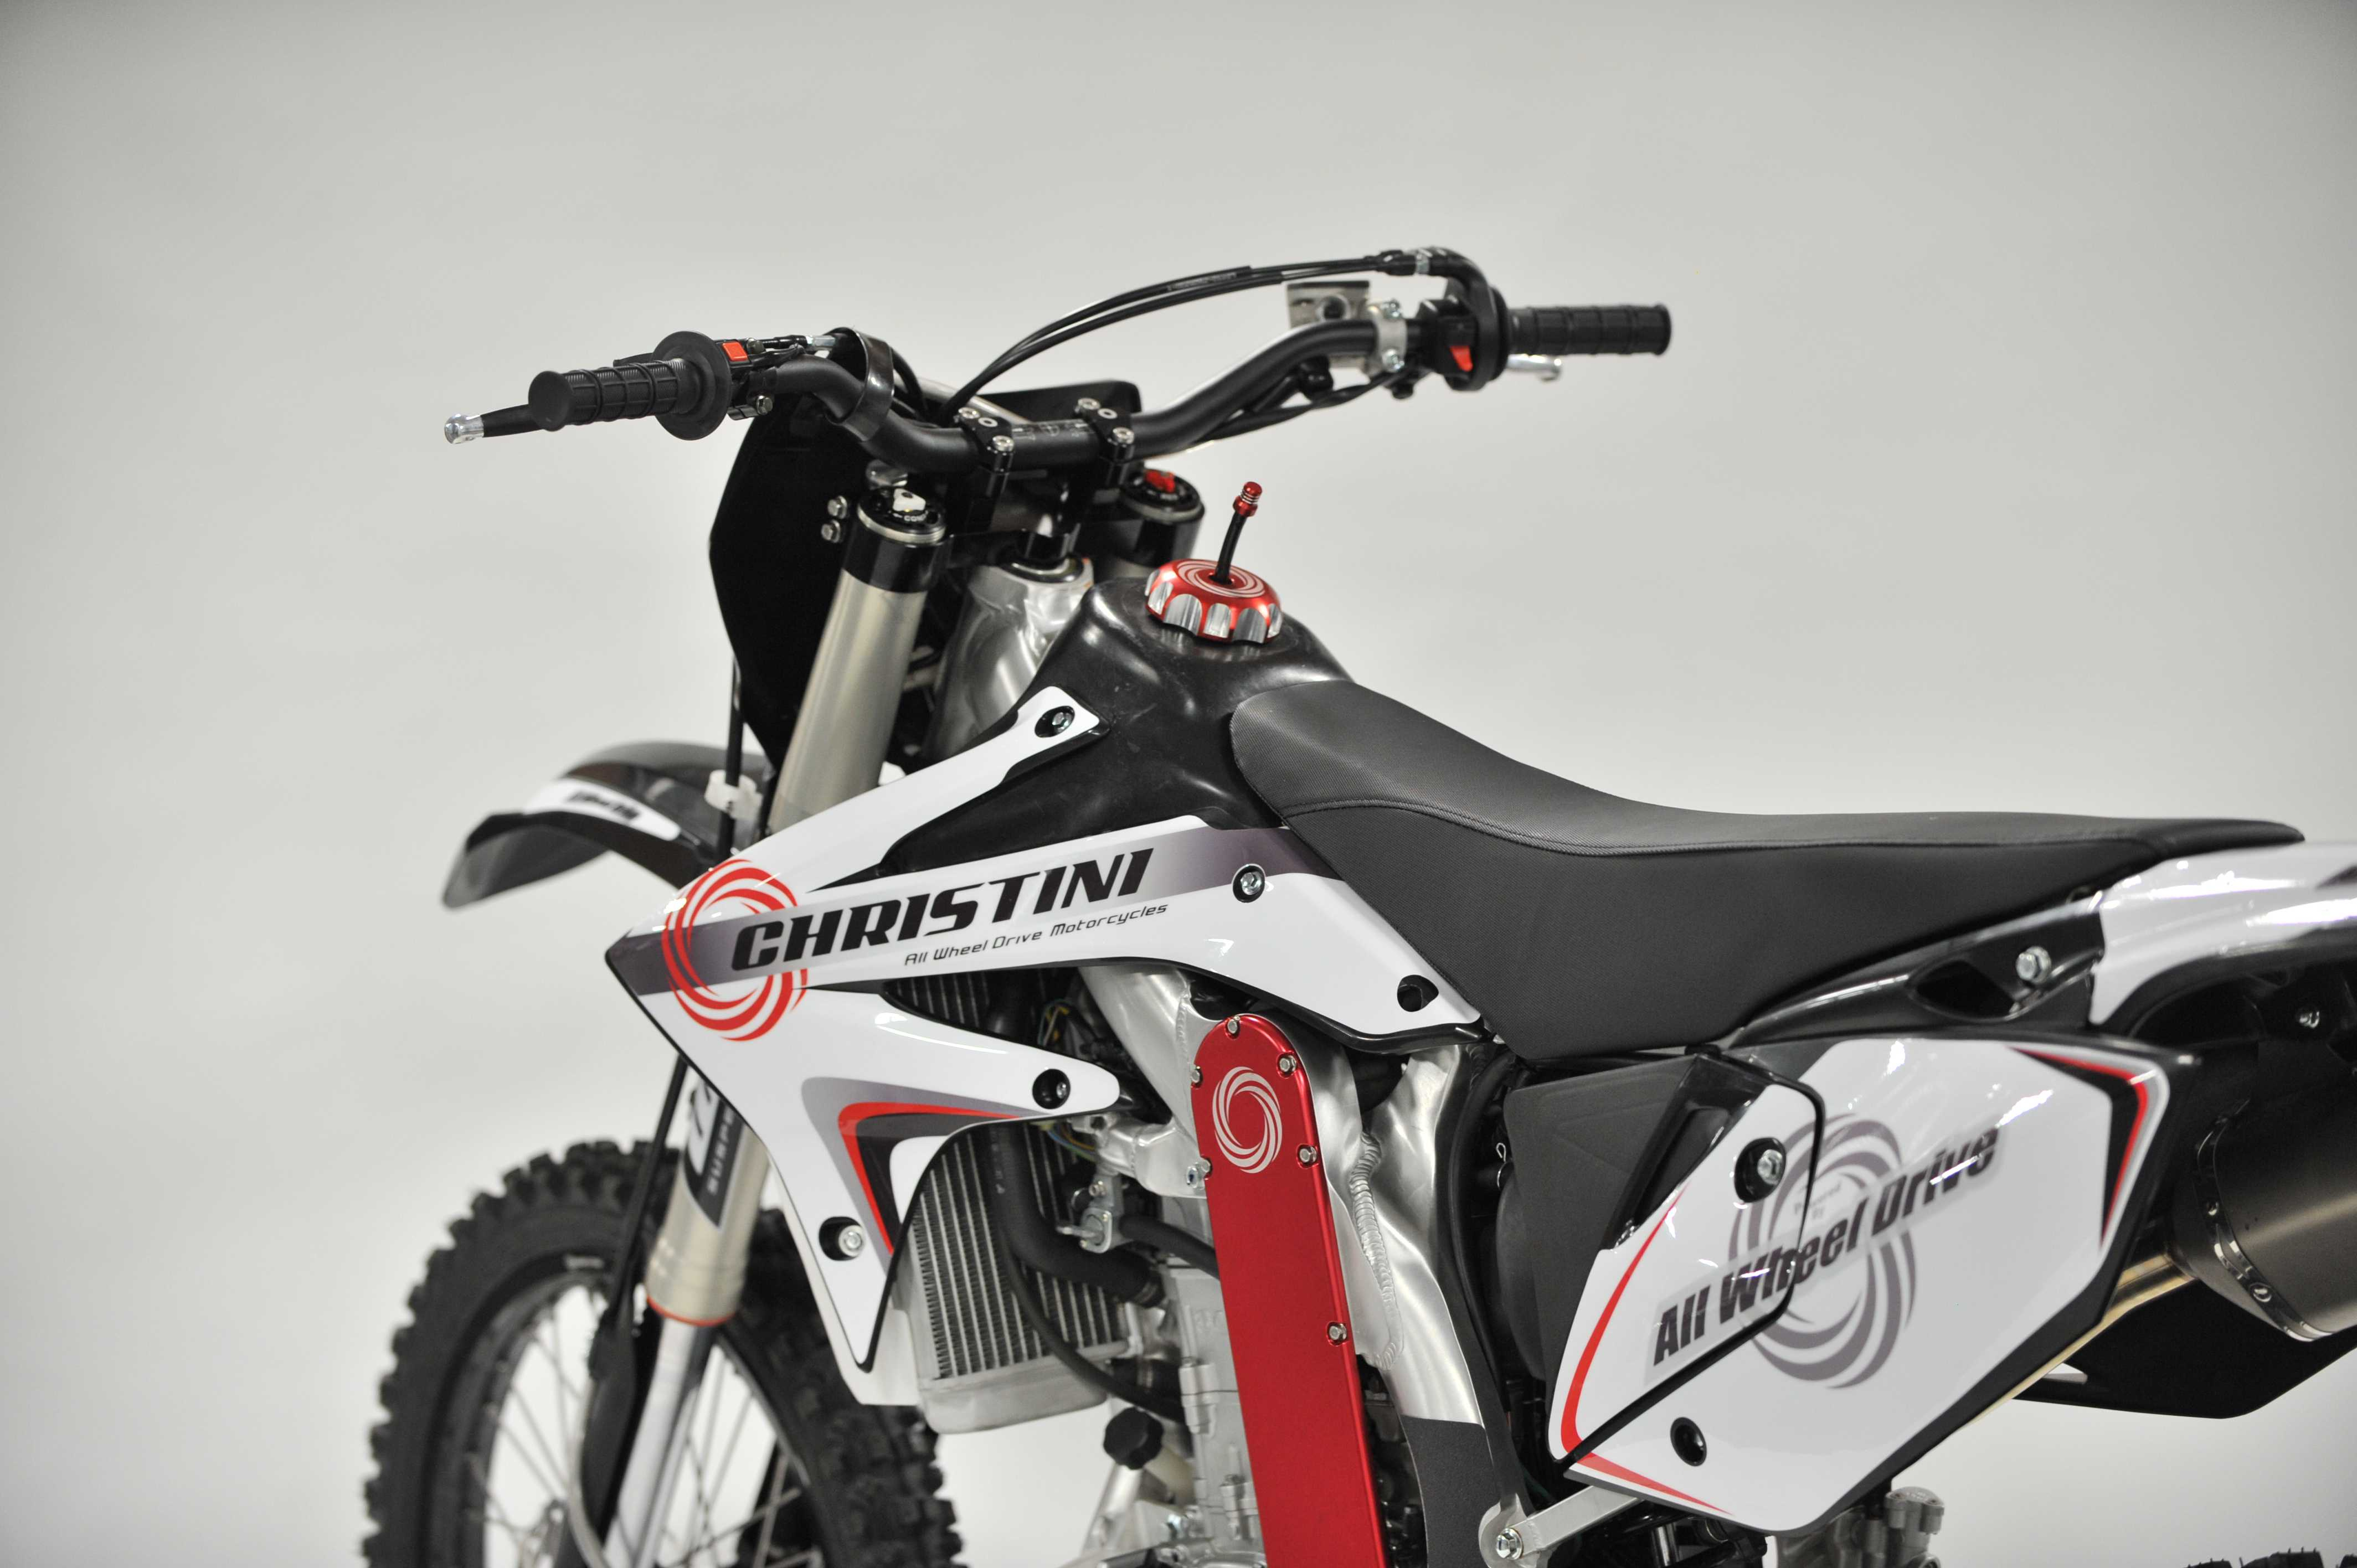 home - christini all wheel drive motorcycles